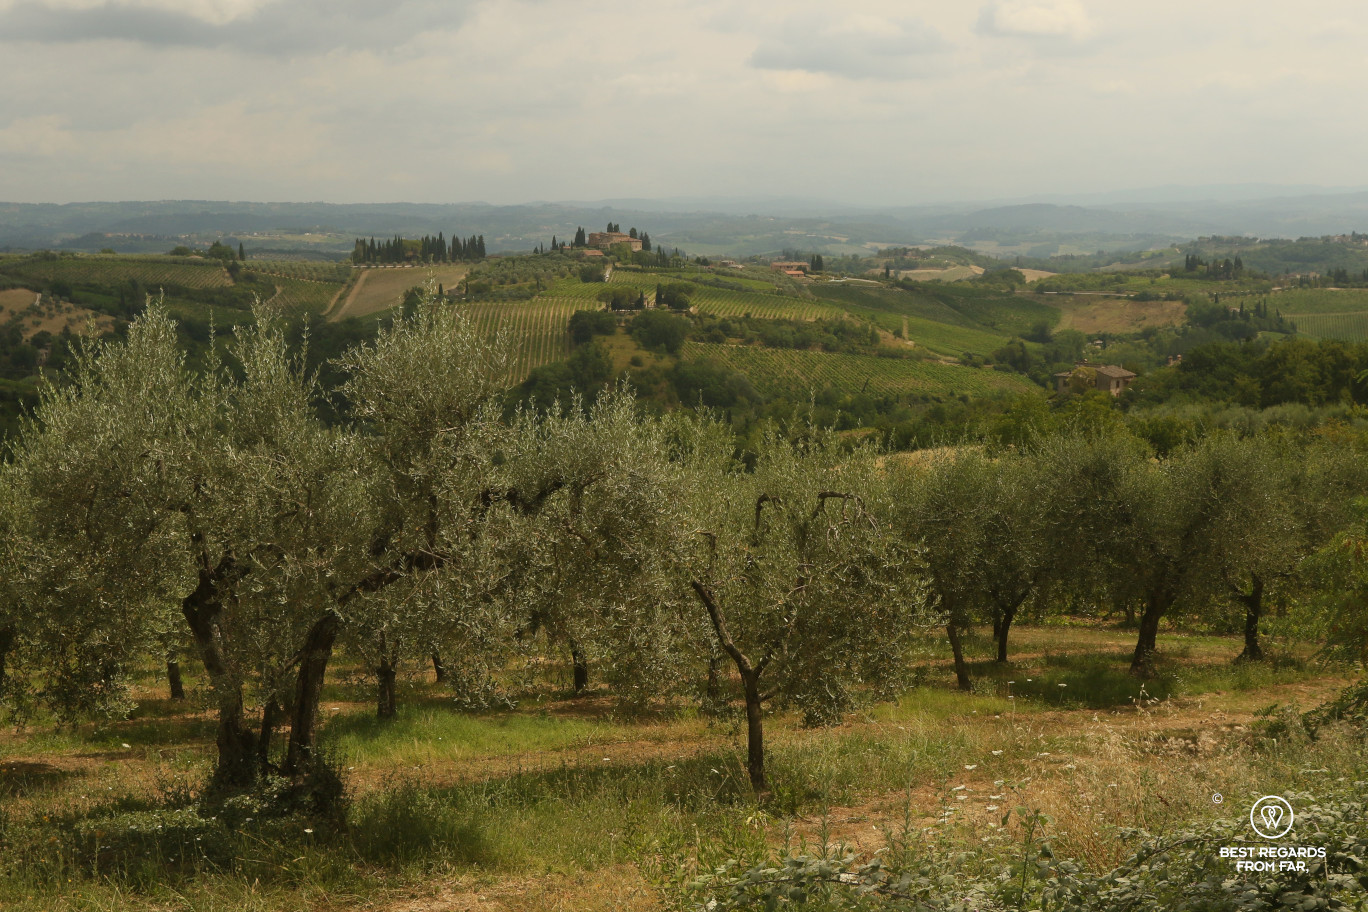 Tuscan landscapes: olive groves and vineyards on the hills